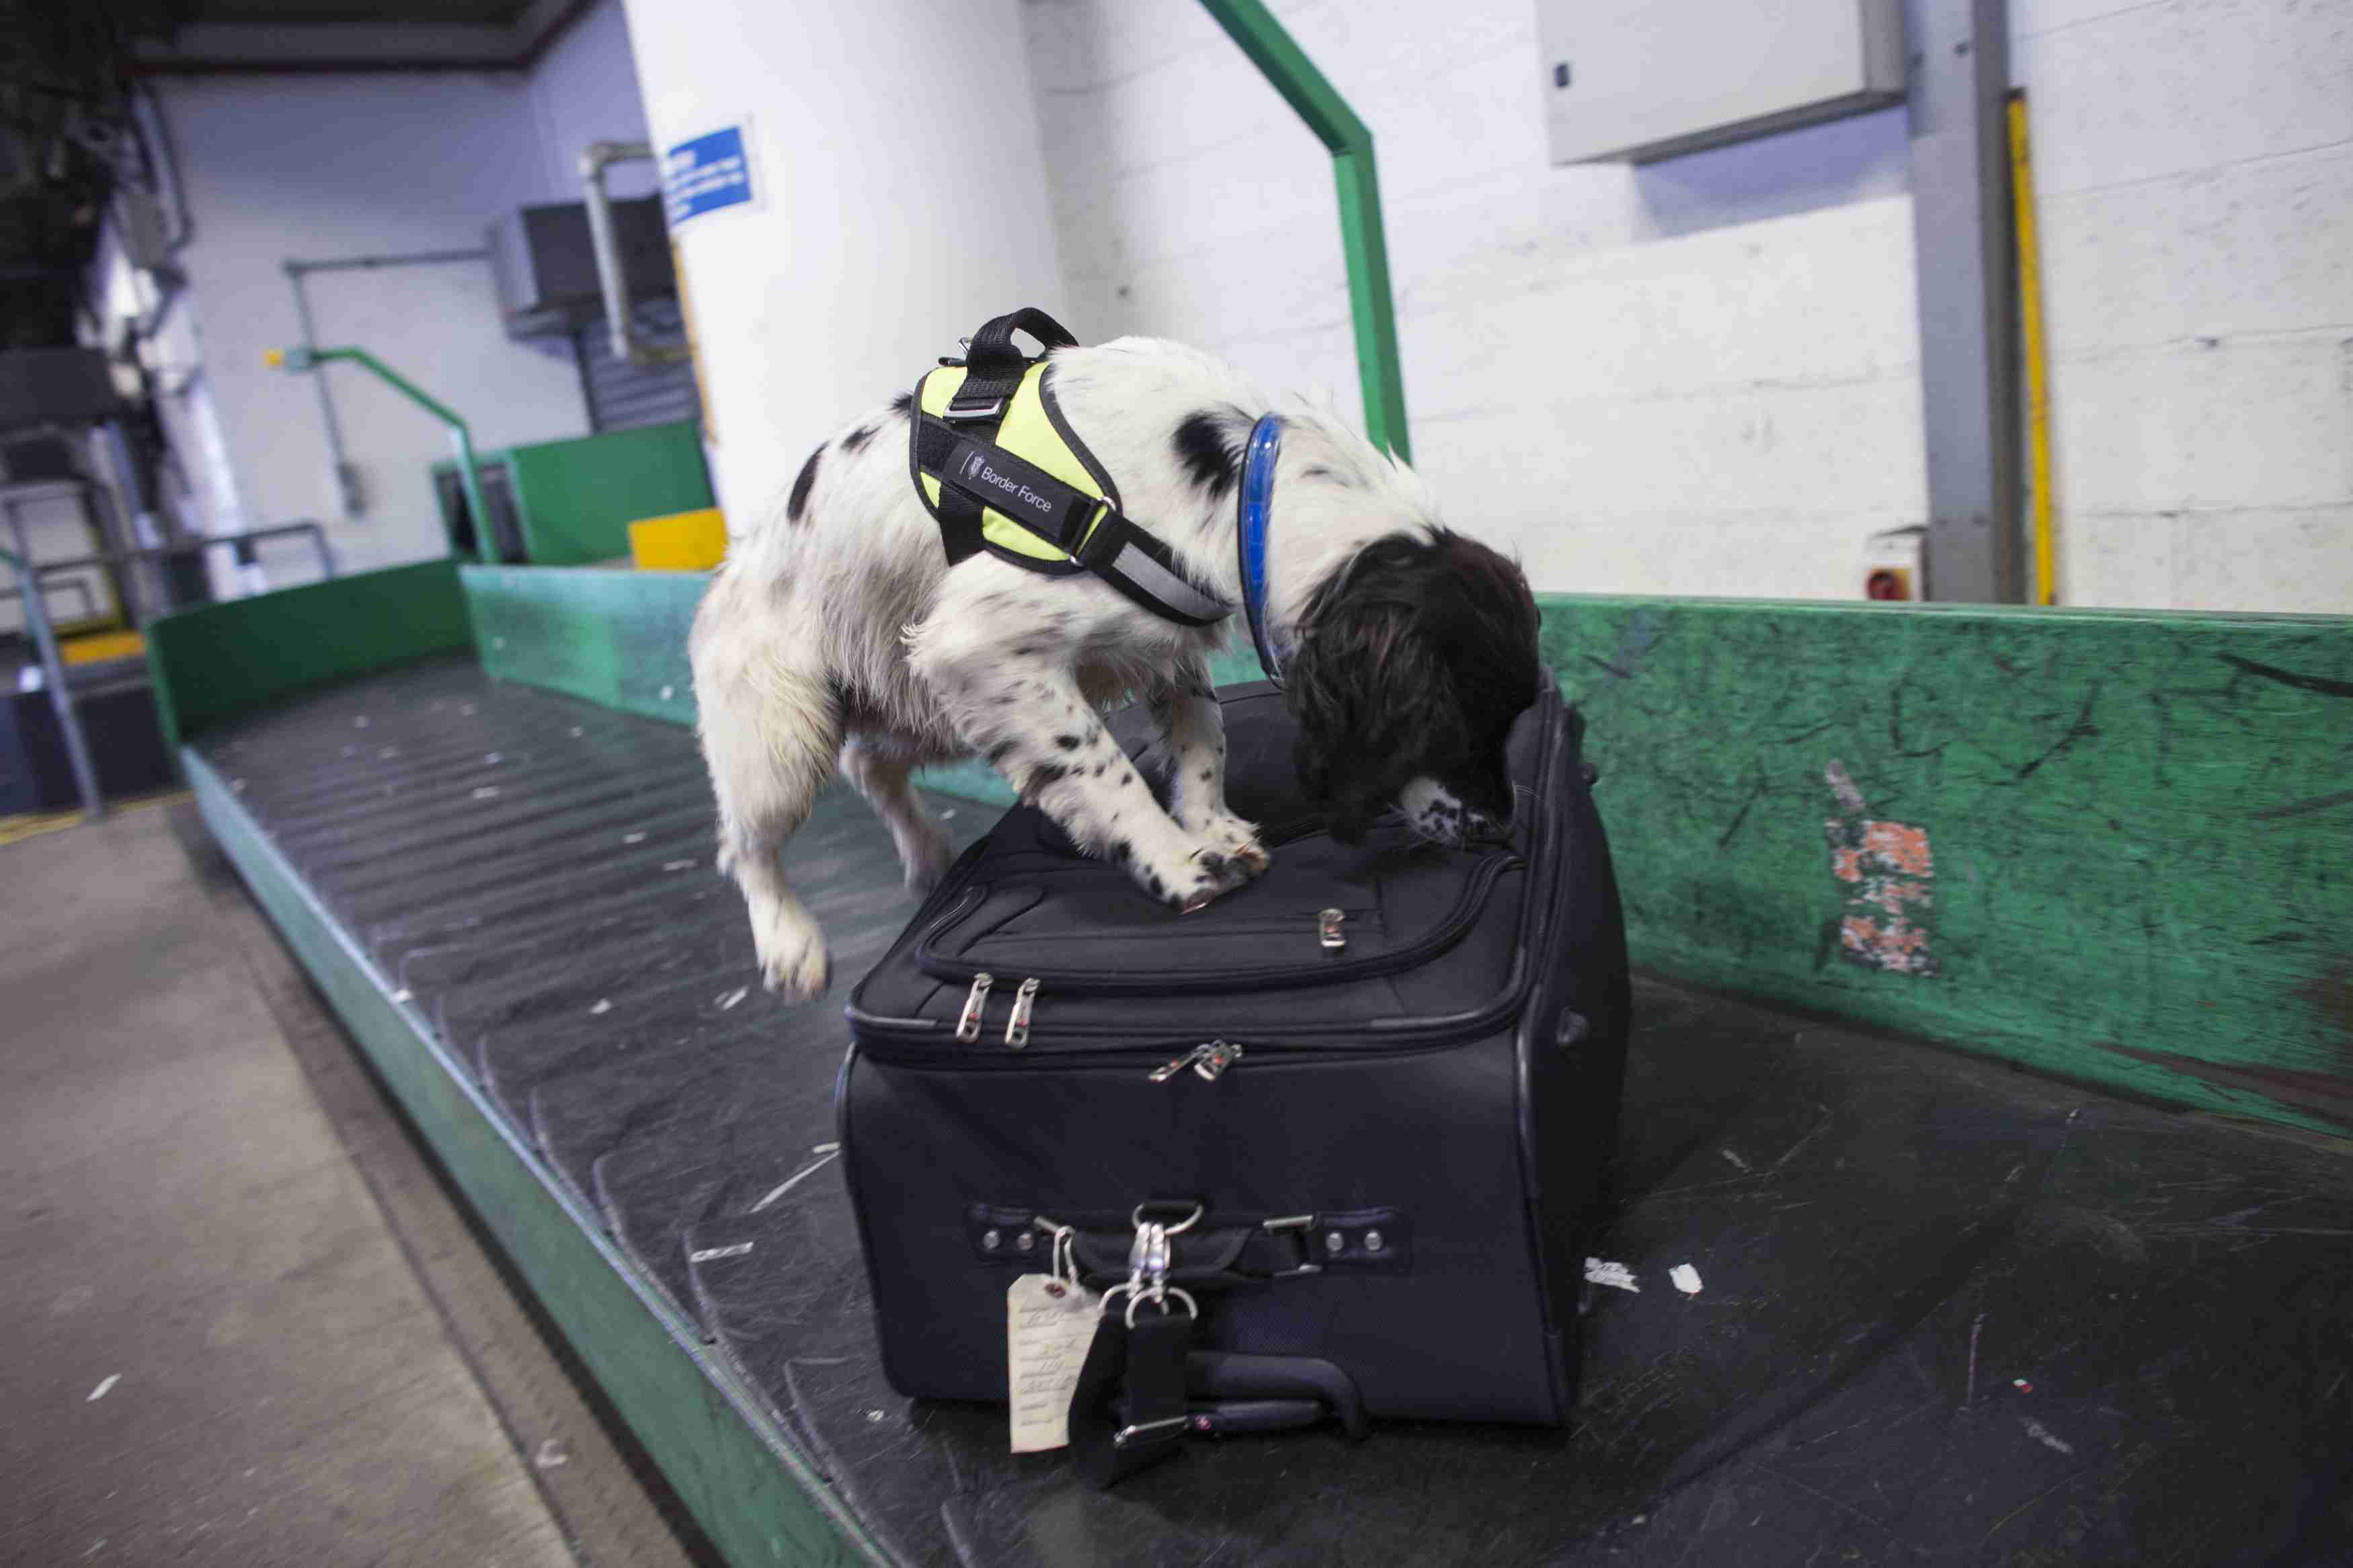 A detection dog sniffing a suitcase